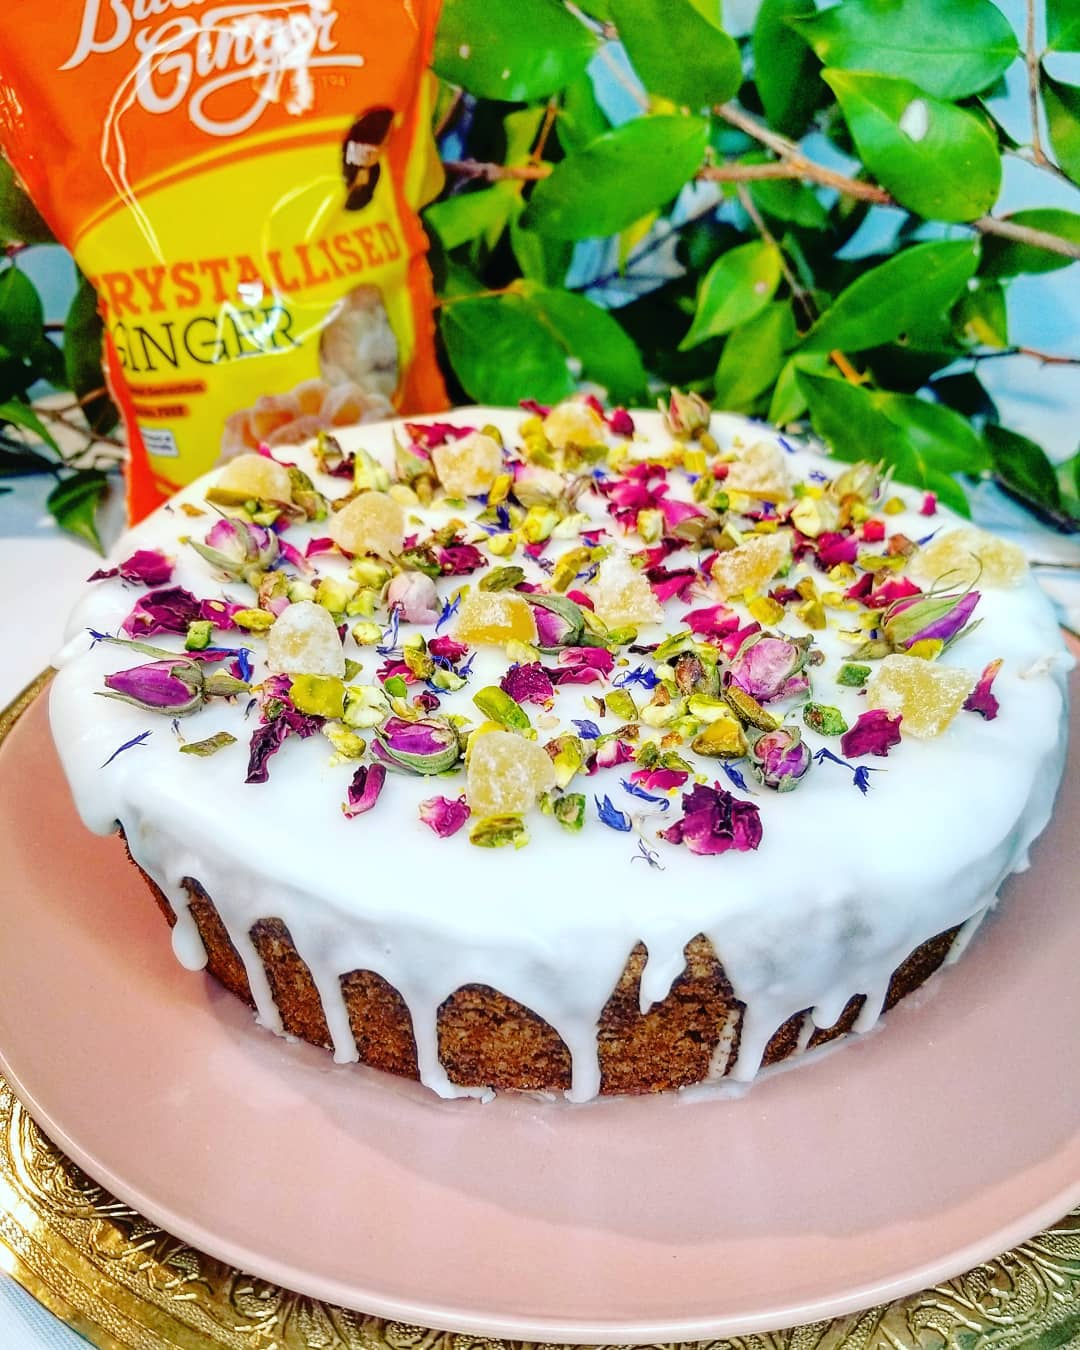 Recipe Persian Love Cake With Buderim Ginger